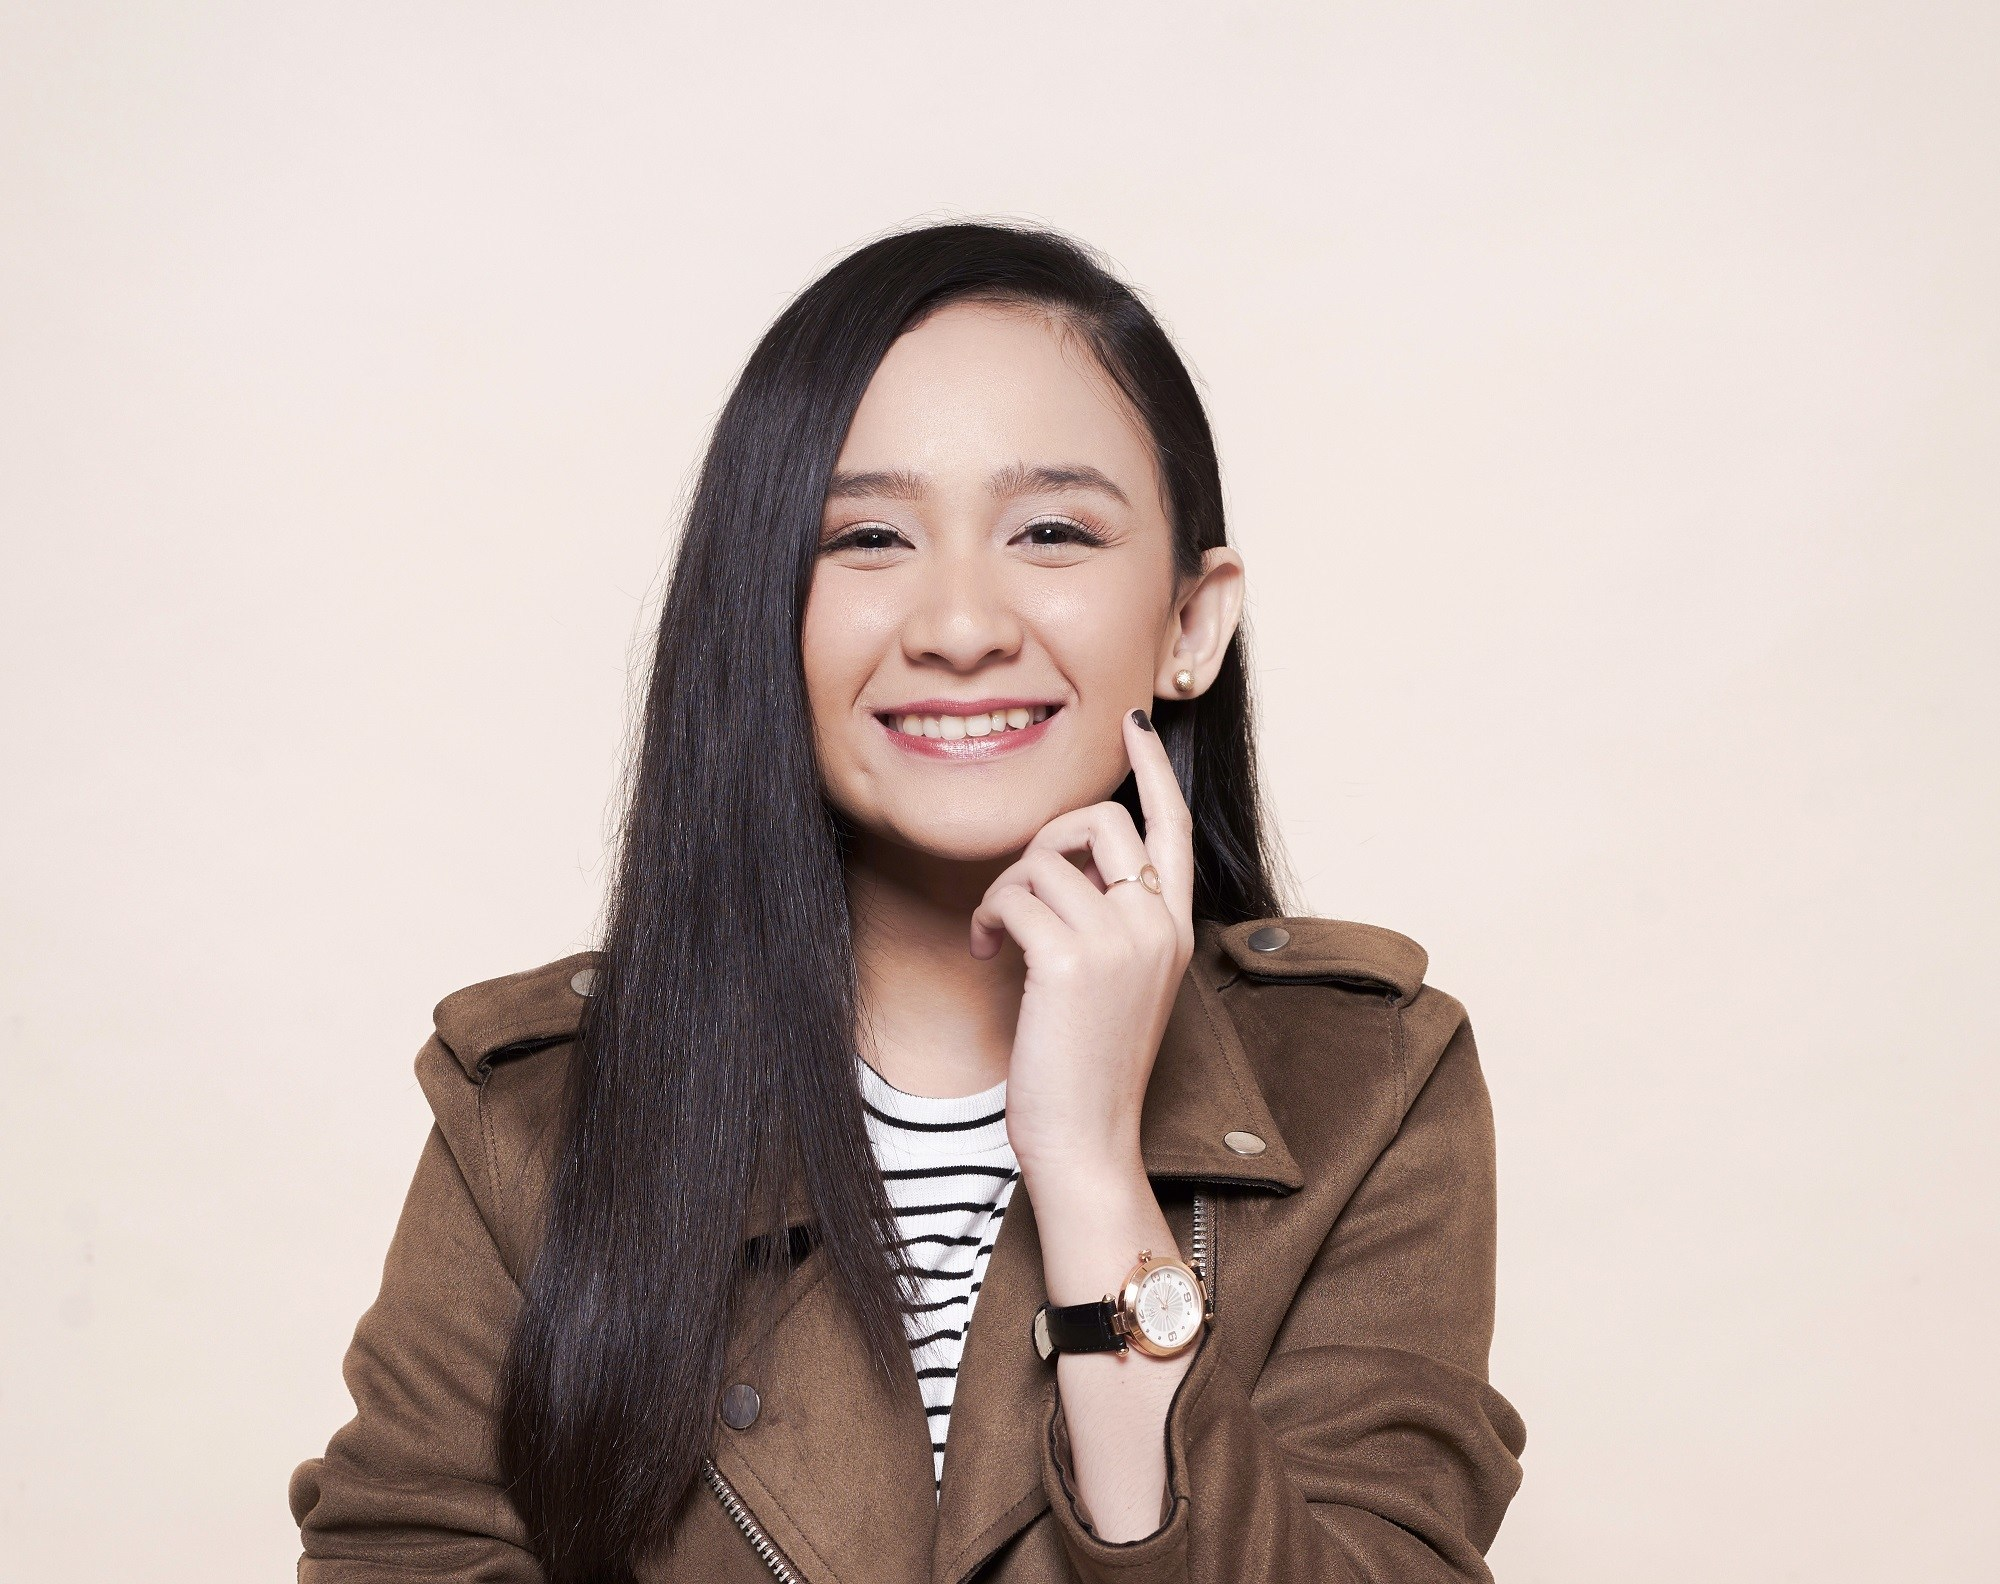 Asian girl with long straight black hair wearing a brown jacket standing against an oyster-colored background to represent users of serum conditioners